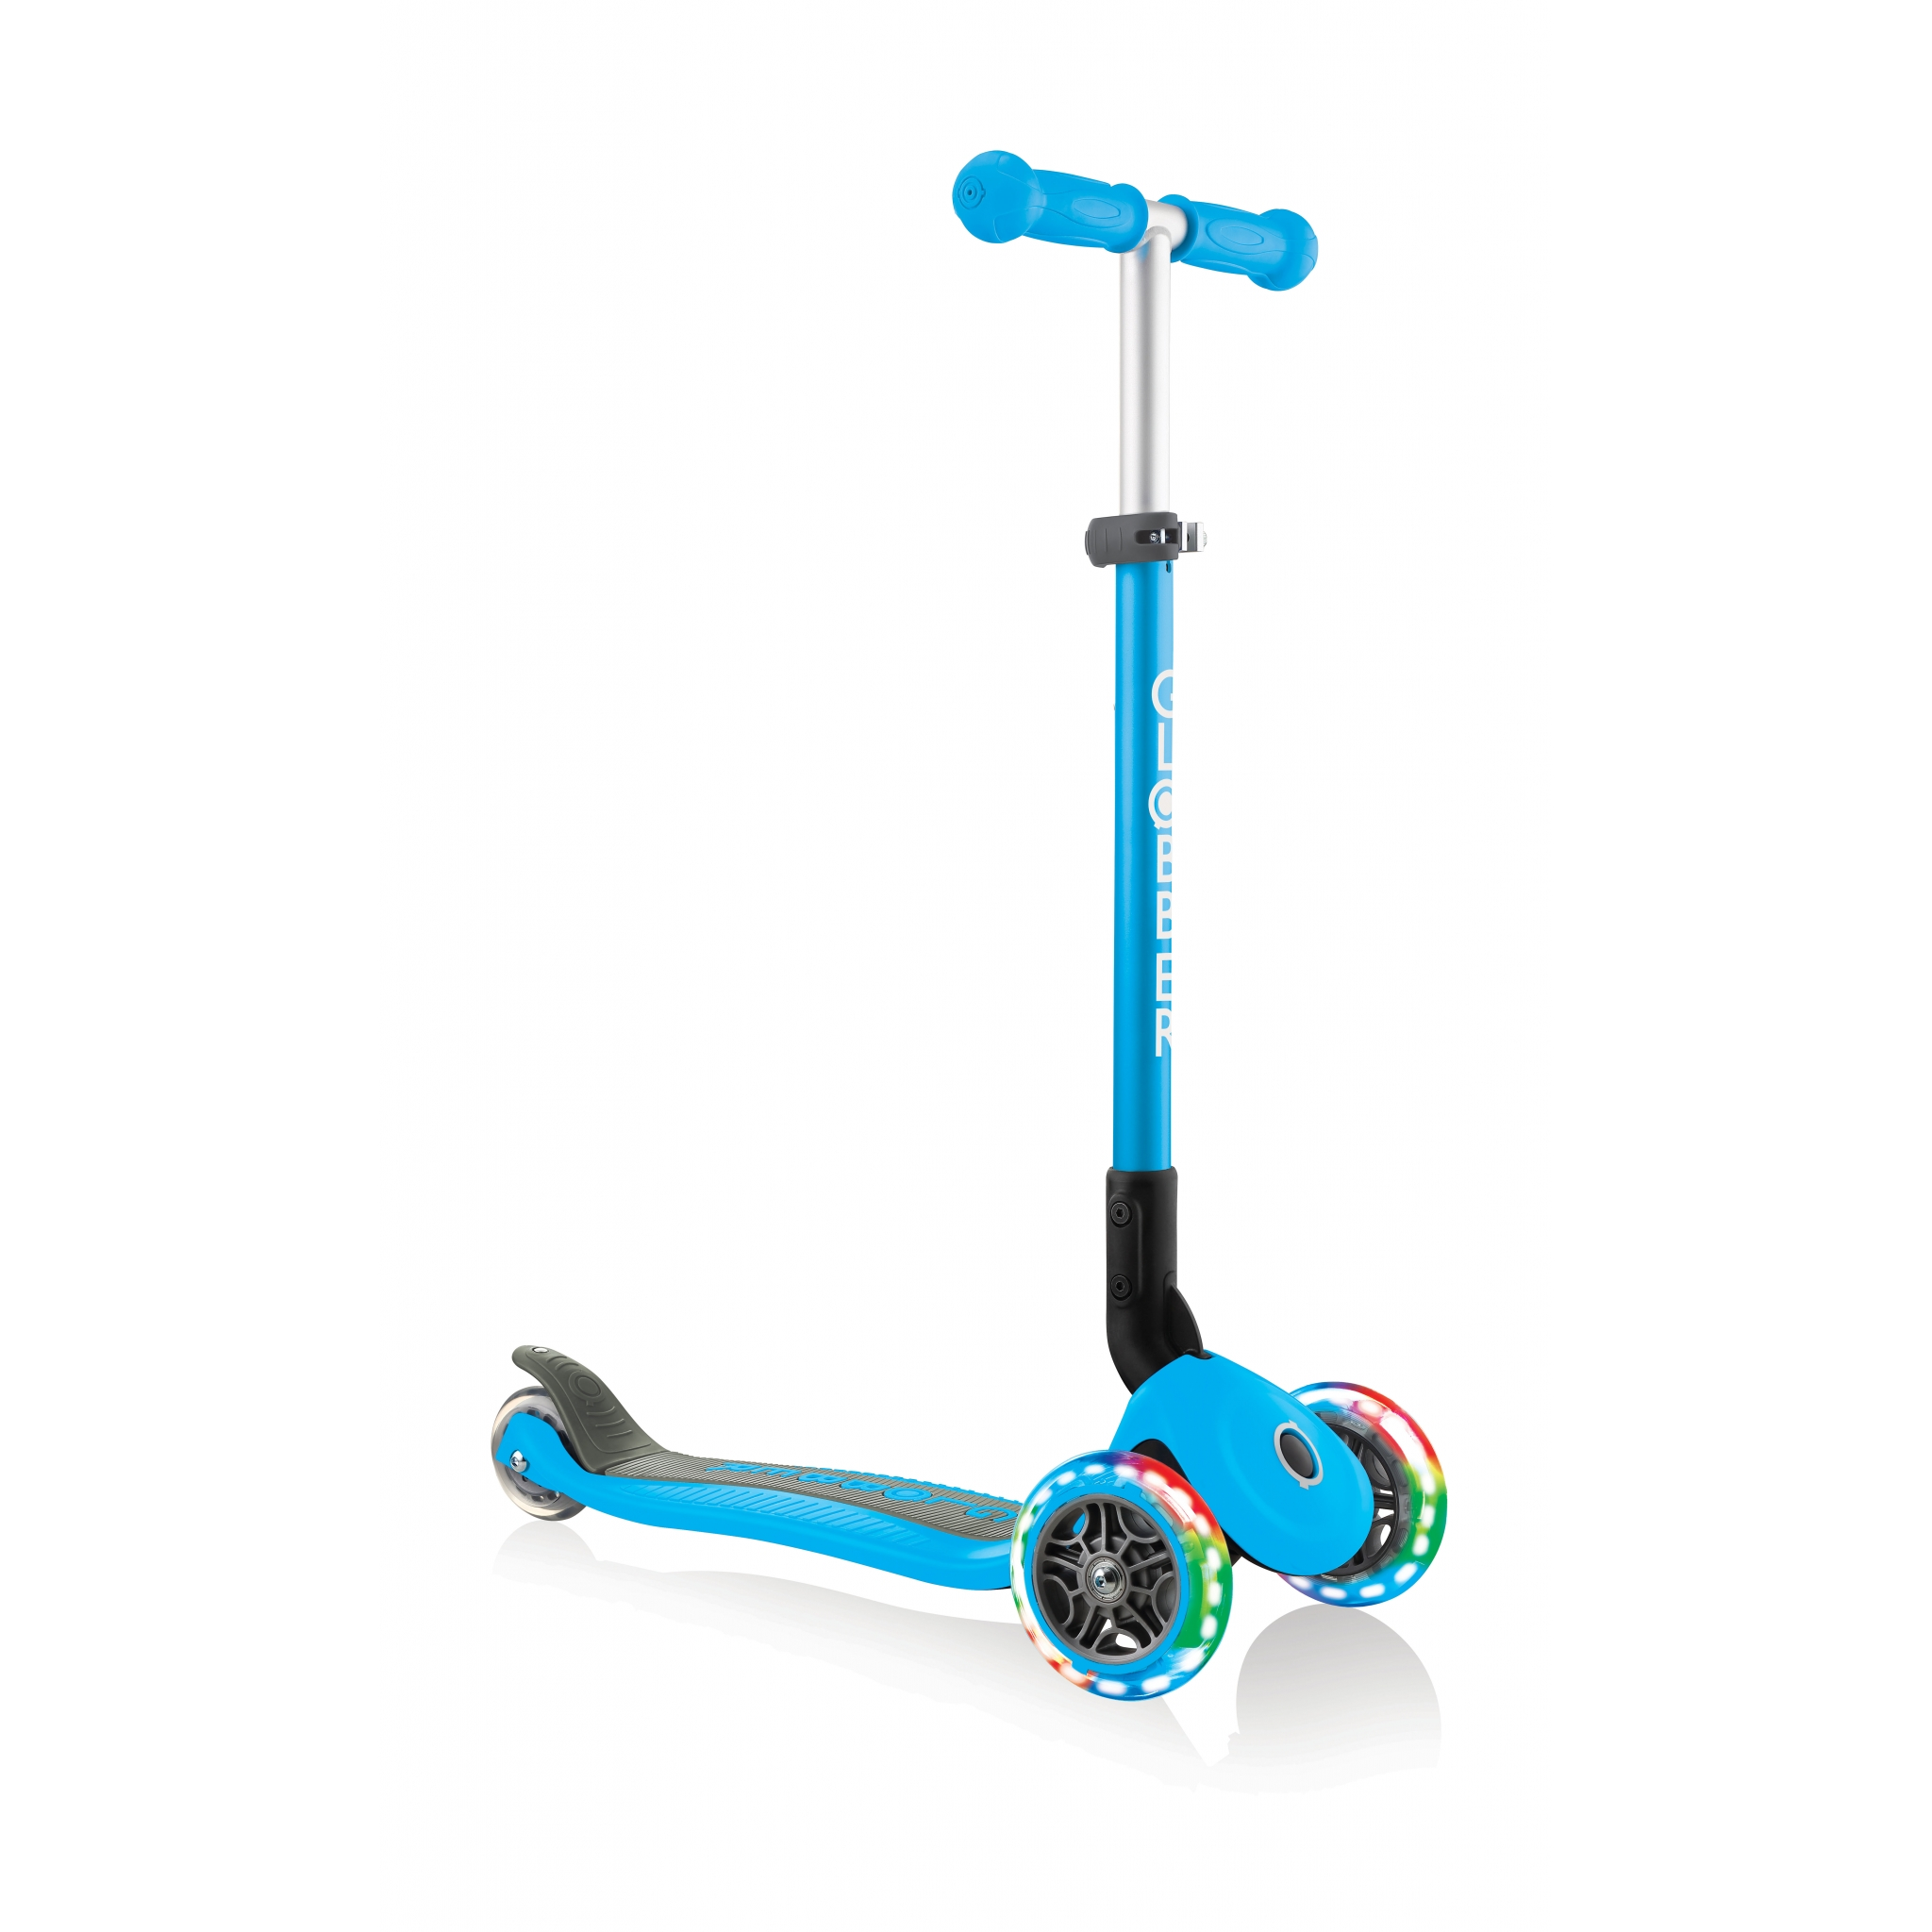 PRIMO-FOLDABLE-LIGHTS-3-wheel-foldable-scooter-light-up-scooter-for-kids-sky-blue